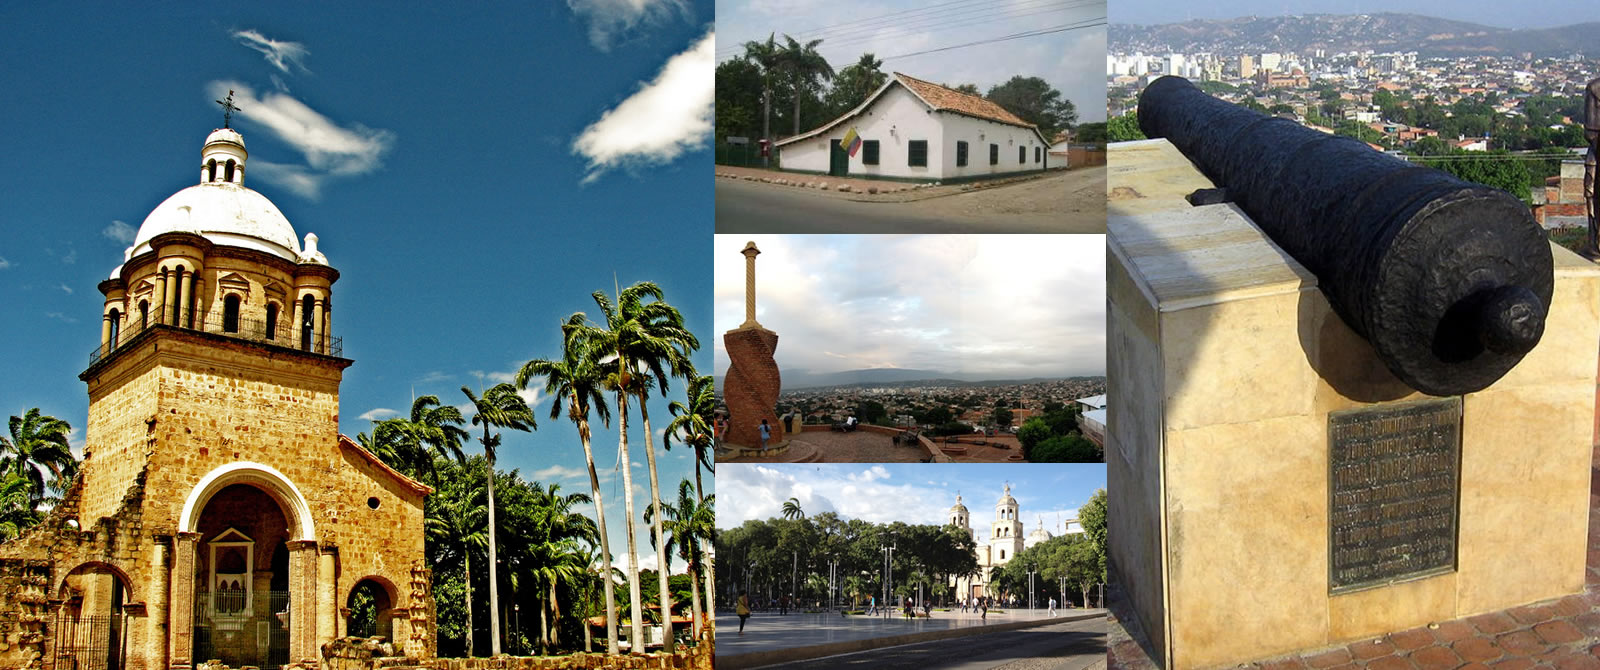 Cucuta city tour and shopping - 6 hours